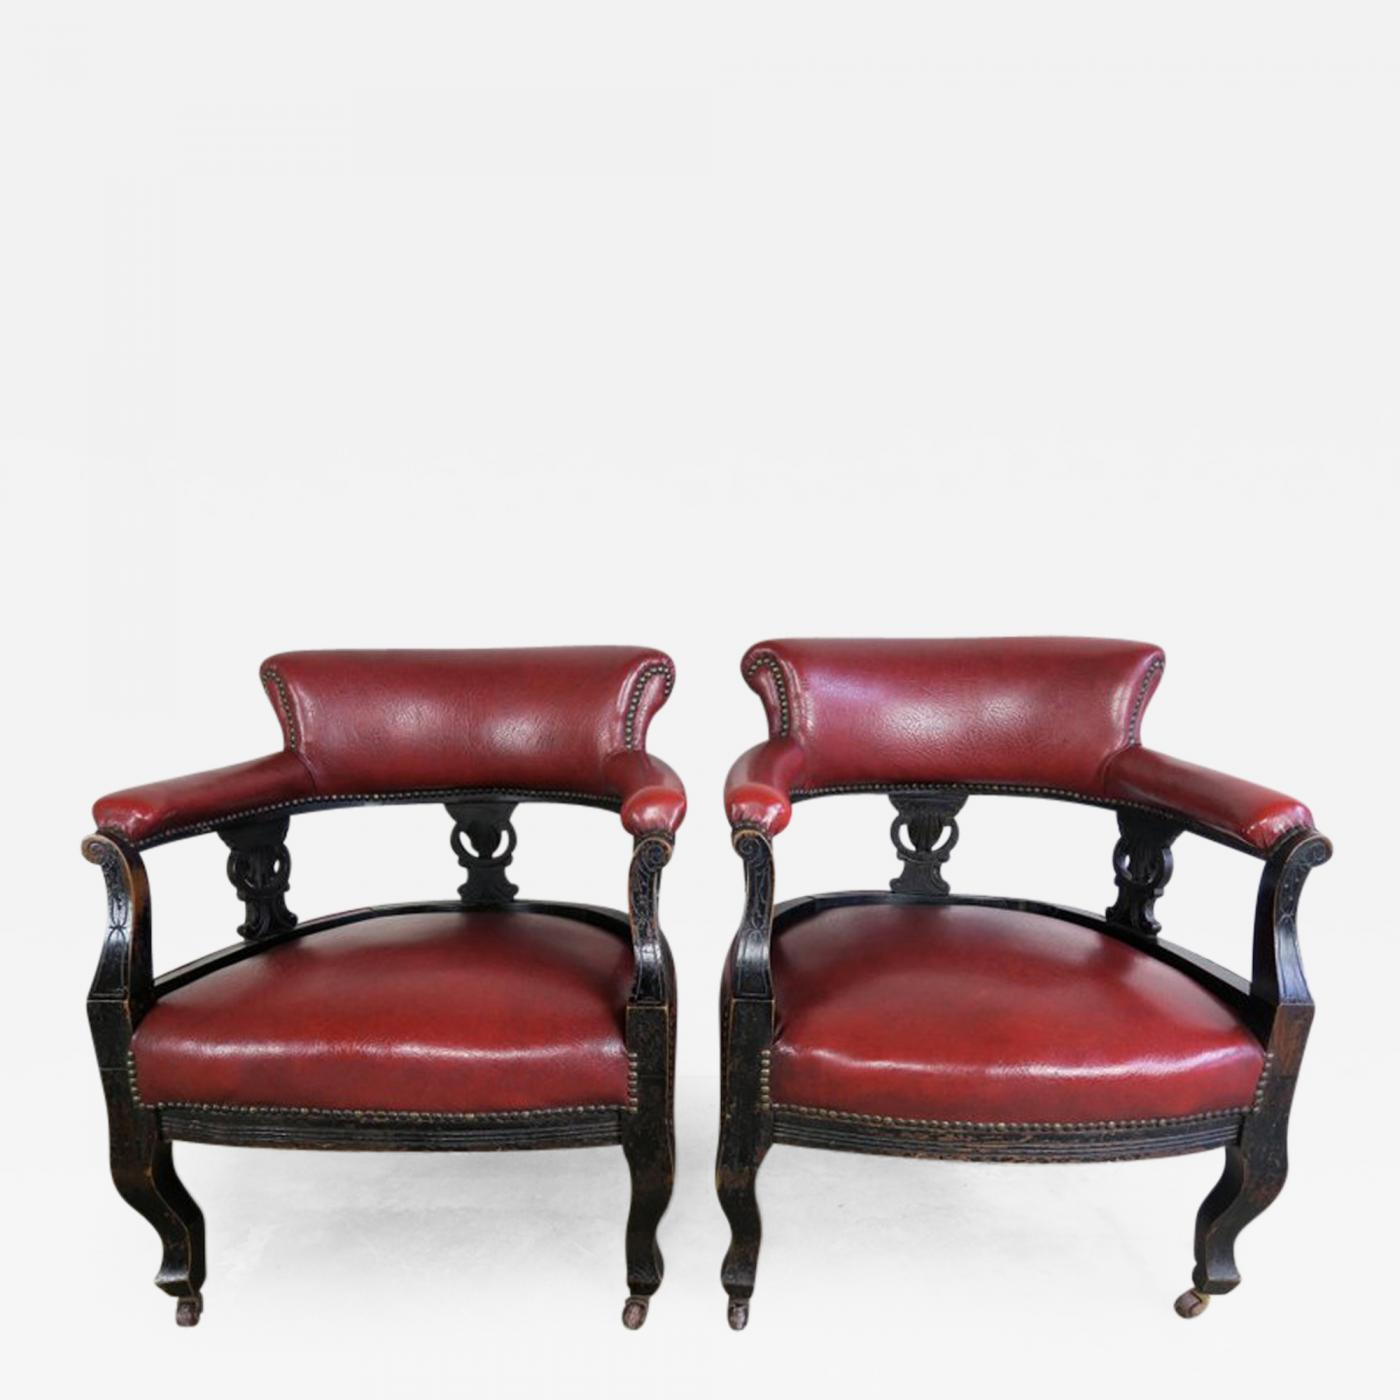 19th Century Victorian Antique Chairs Pair. Tap to expand - 19th Century Victorian Antique Chairs, Pair